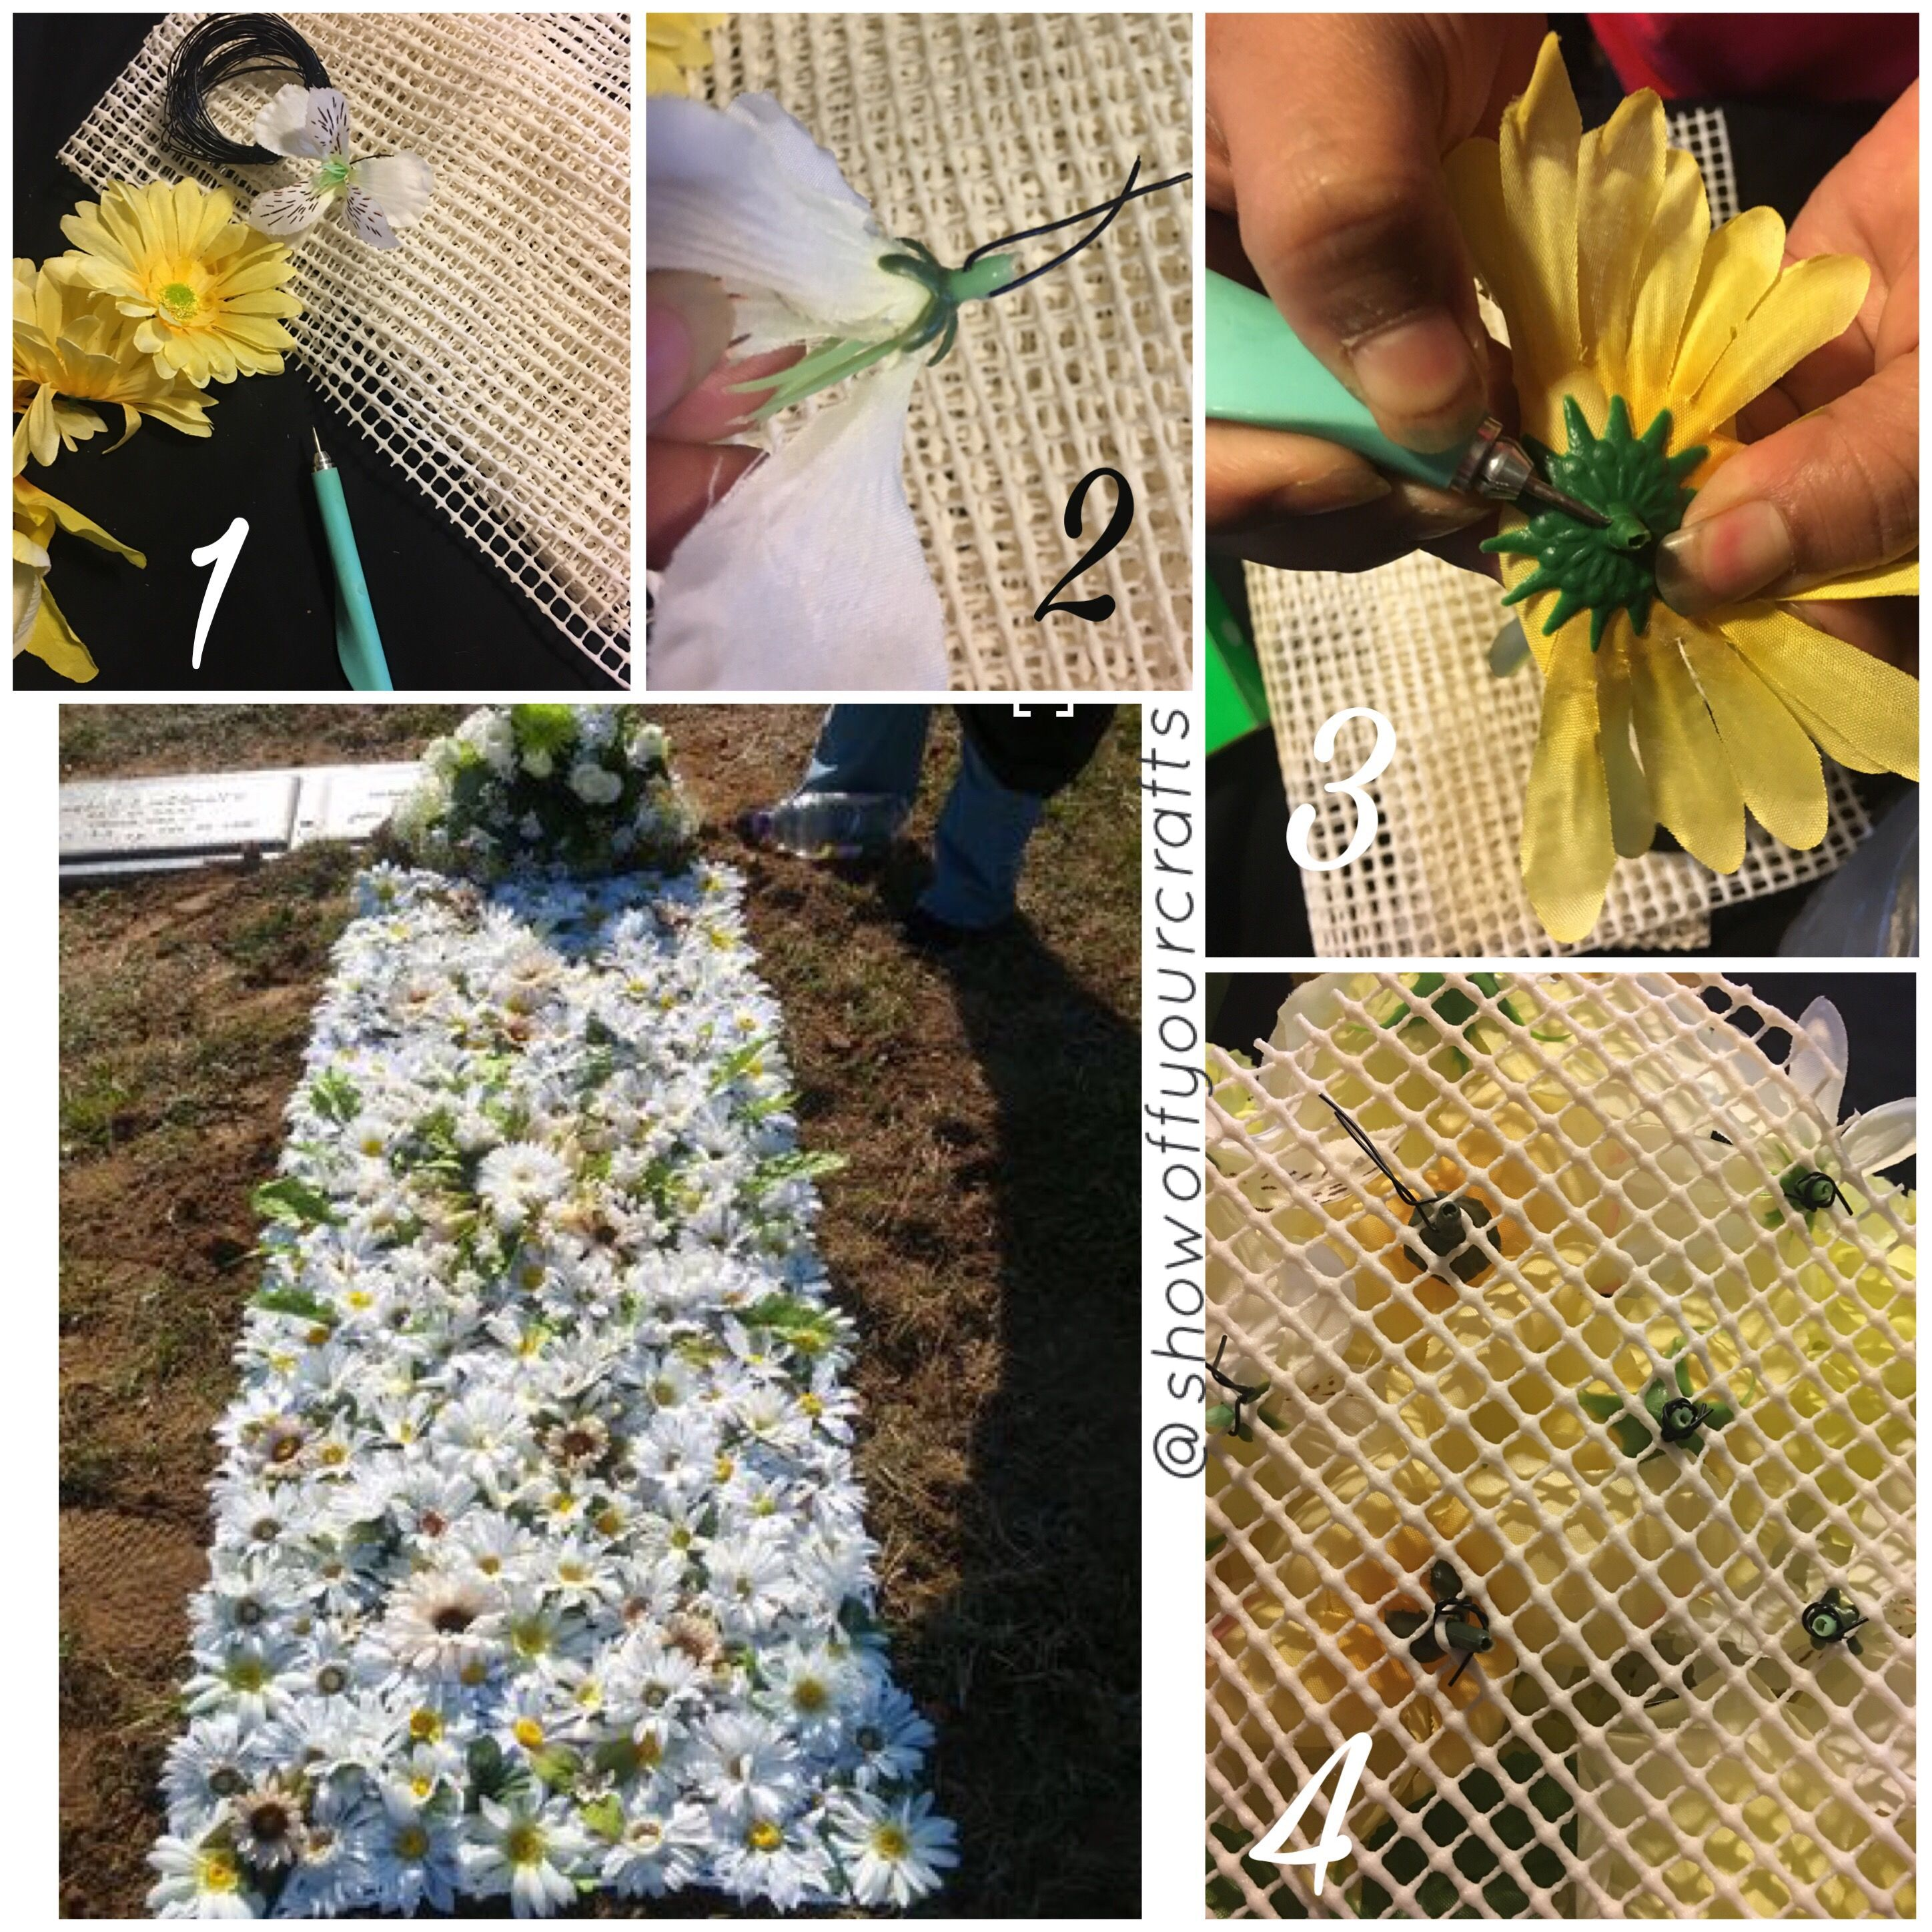 Flower Blanket Grave Blanket I Did For My Brother Step By Step Pinterest Inspired Headstones Decorations Grave Flowers Gravesite Decorations